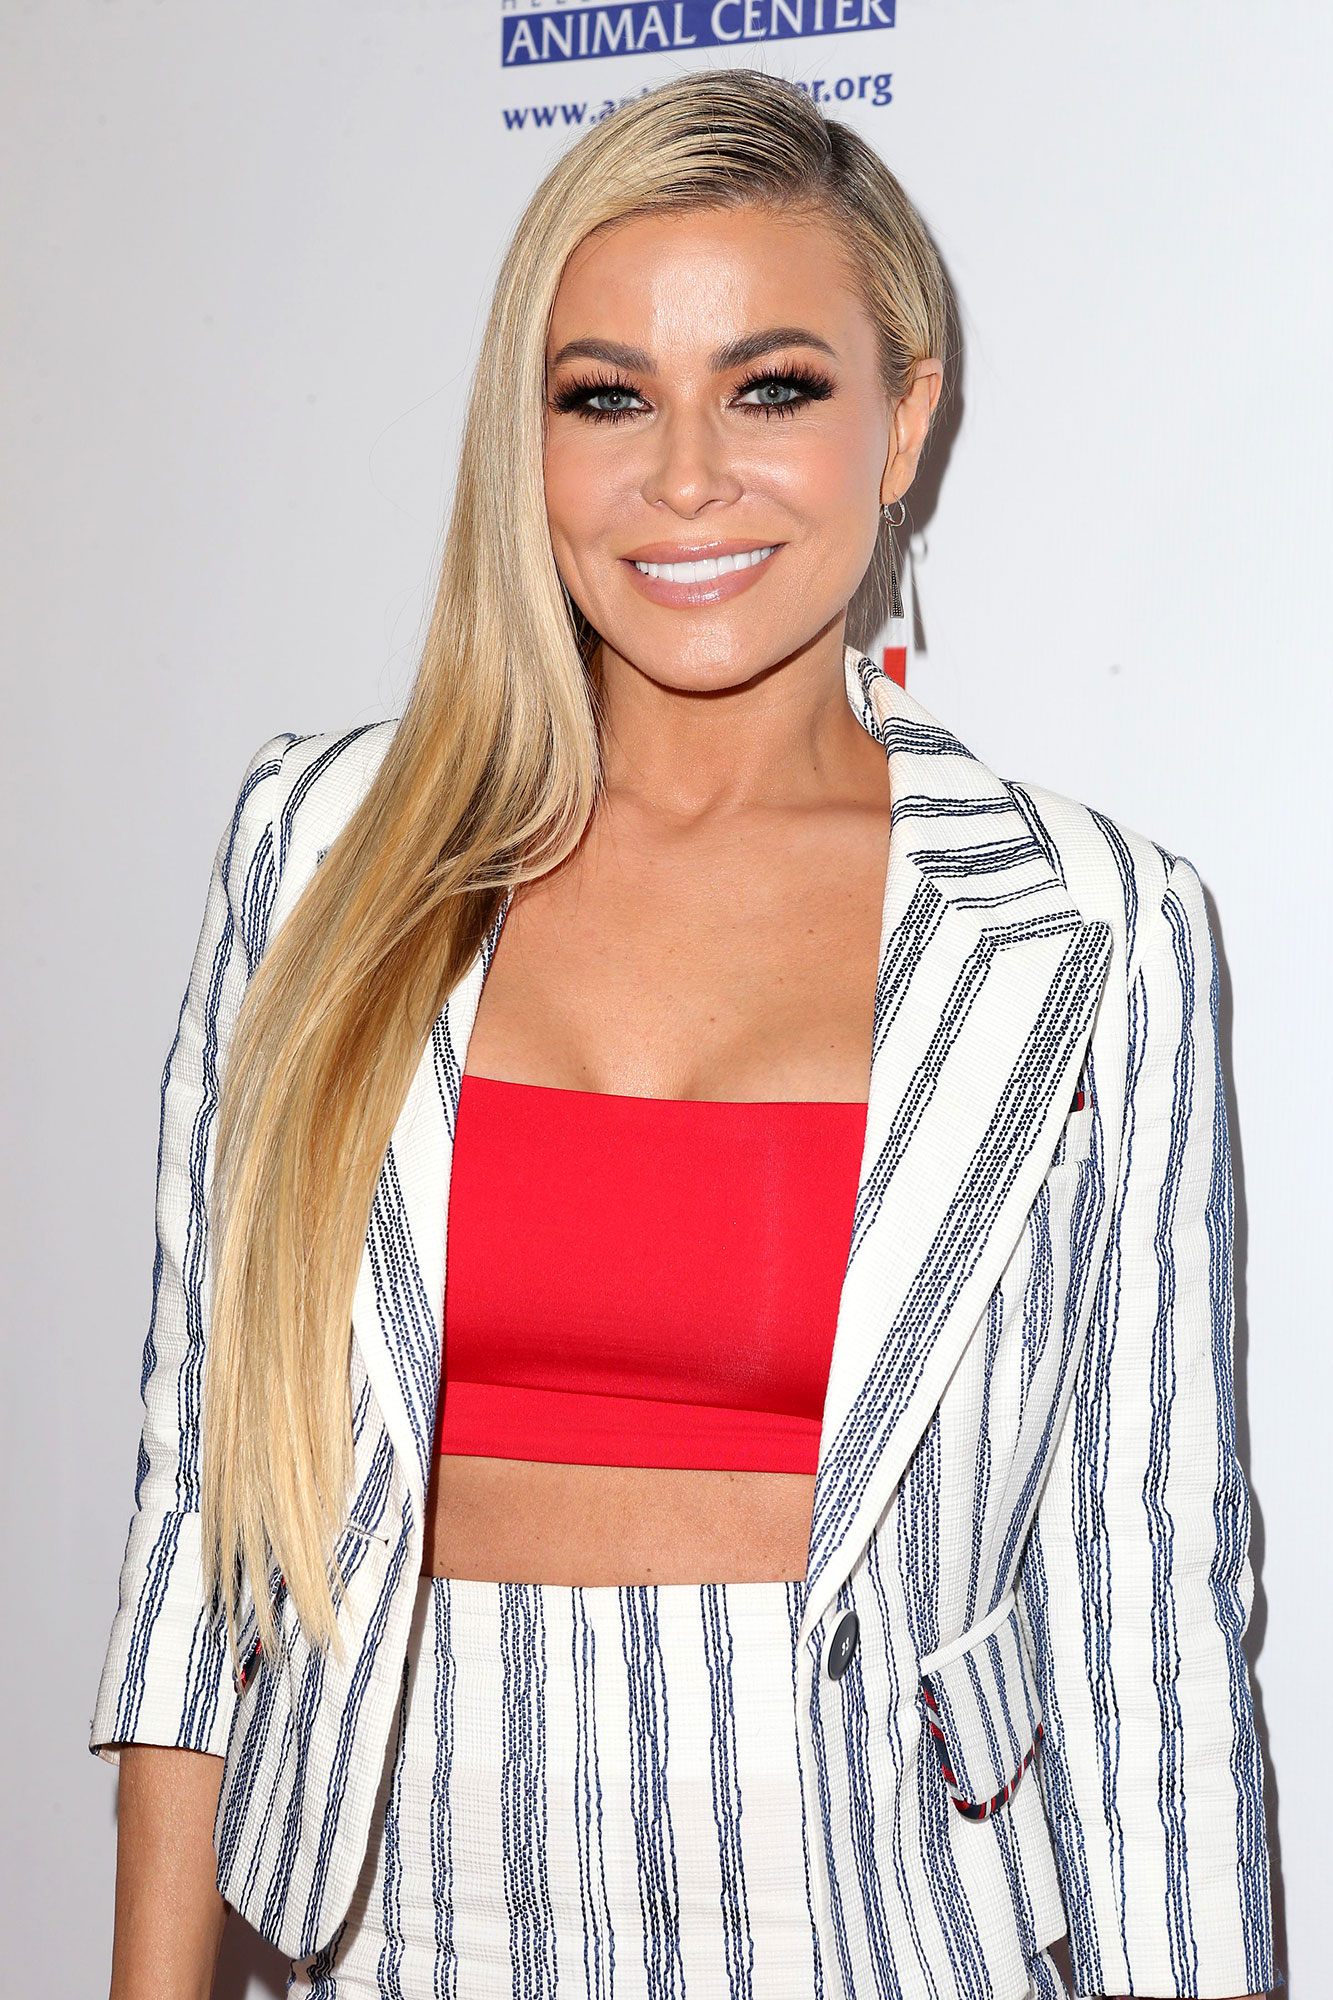 Carmen Electra Admits She and Dennis Rodman Had Sex All Over Chicago Bulls Practice Facility